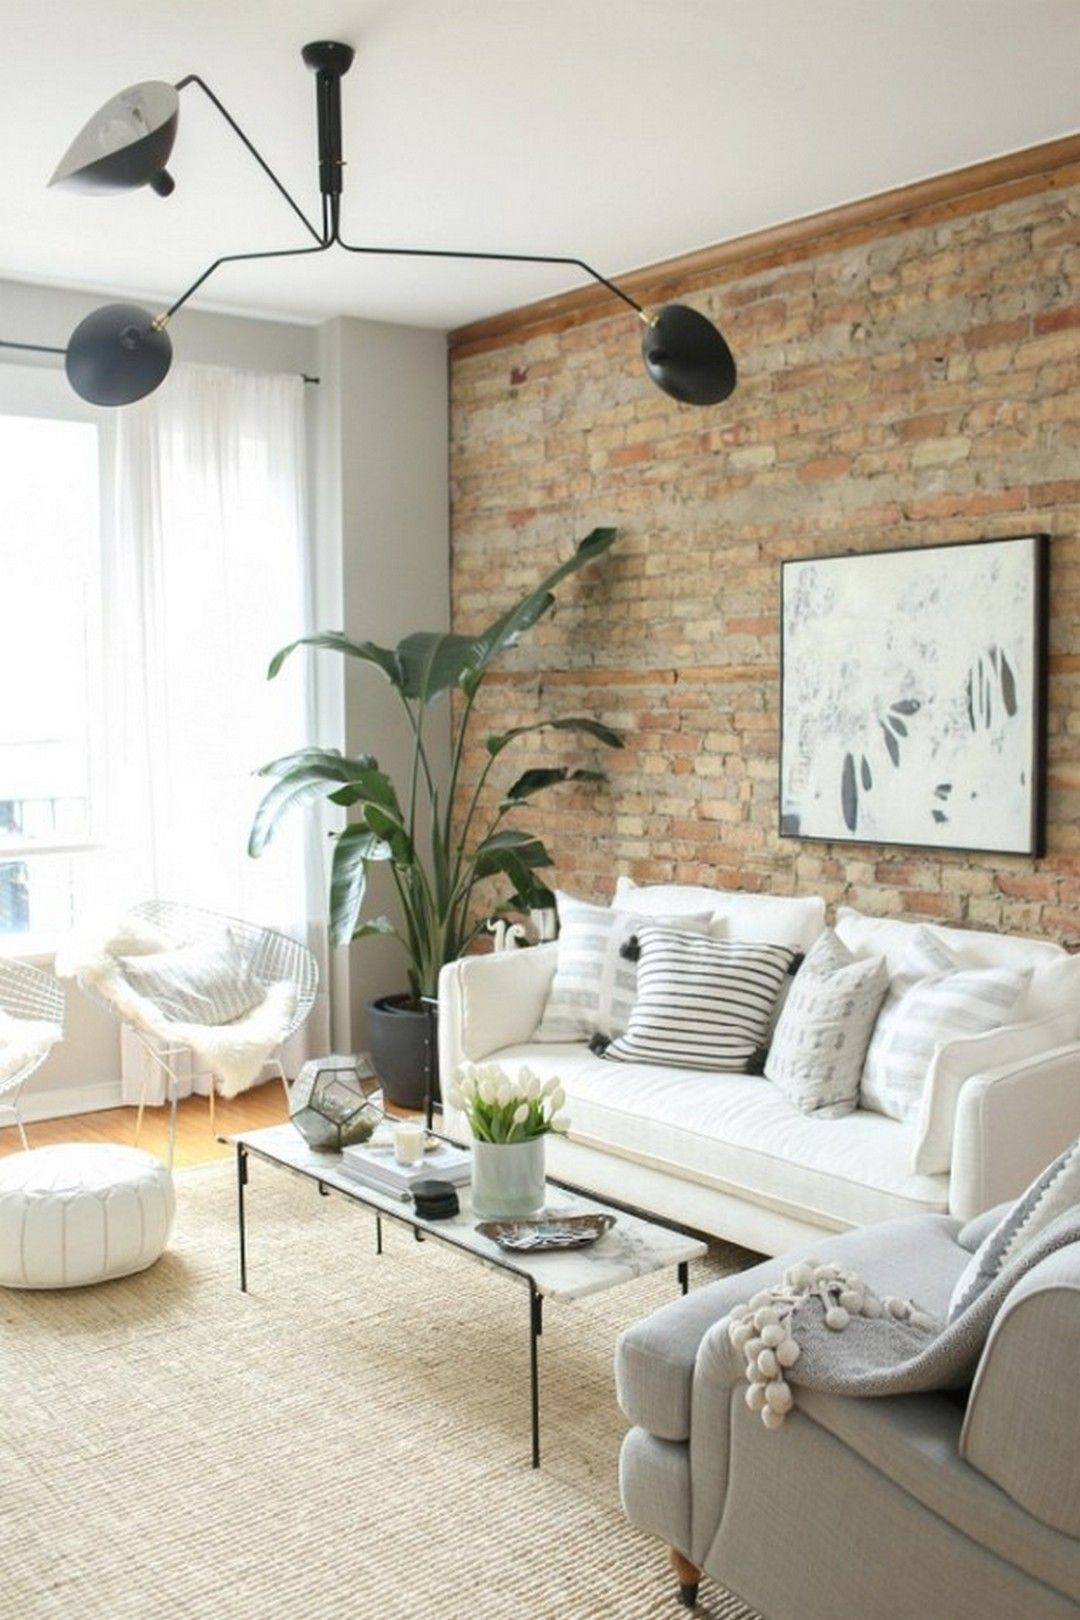 10 Ways of Getting Inspired with These Modern Living Room Home ...